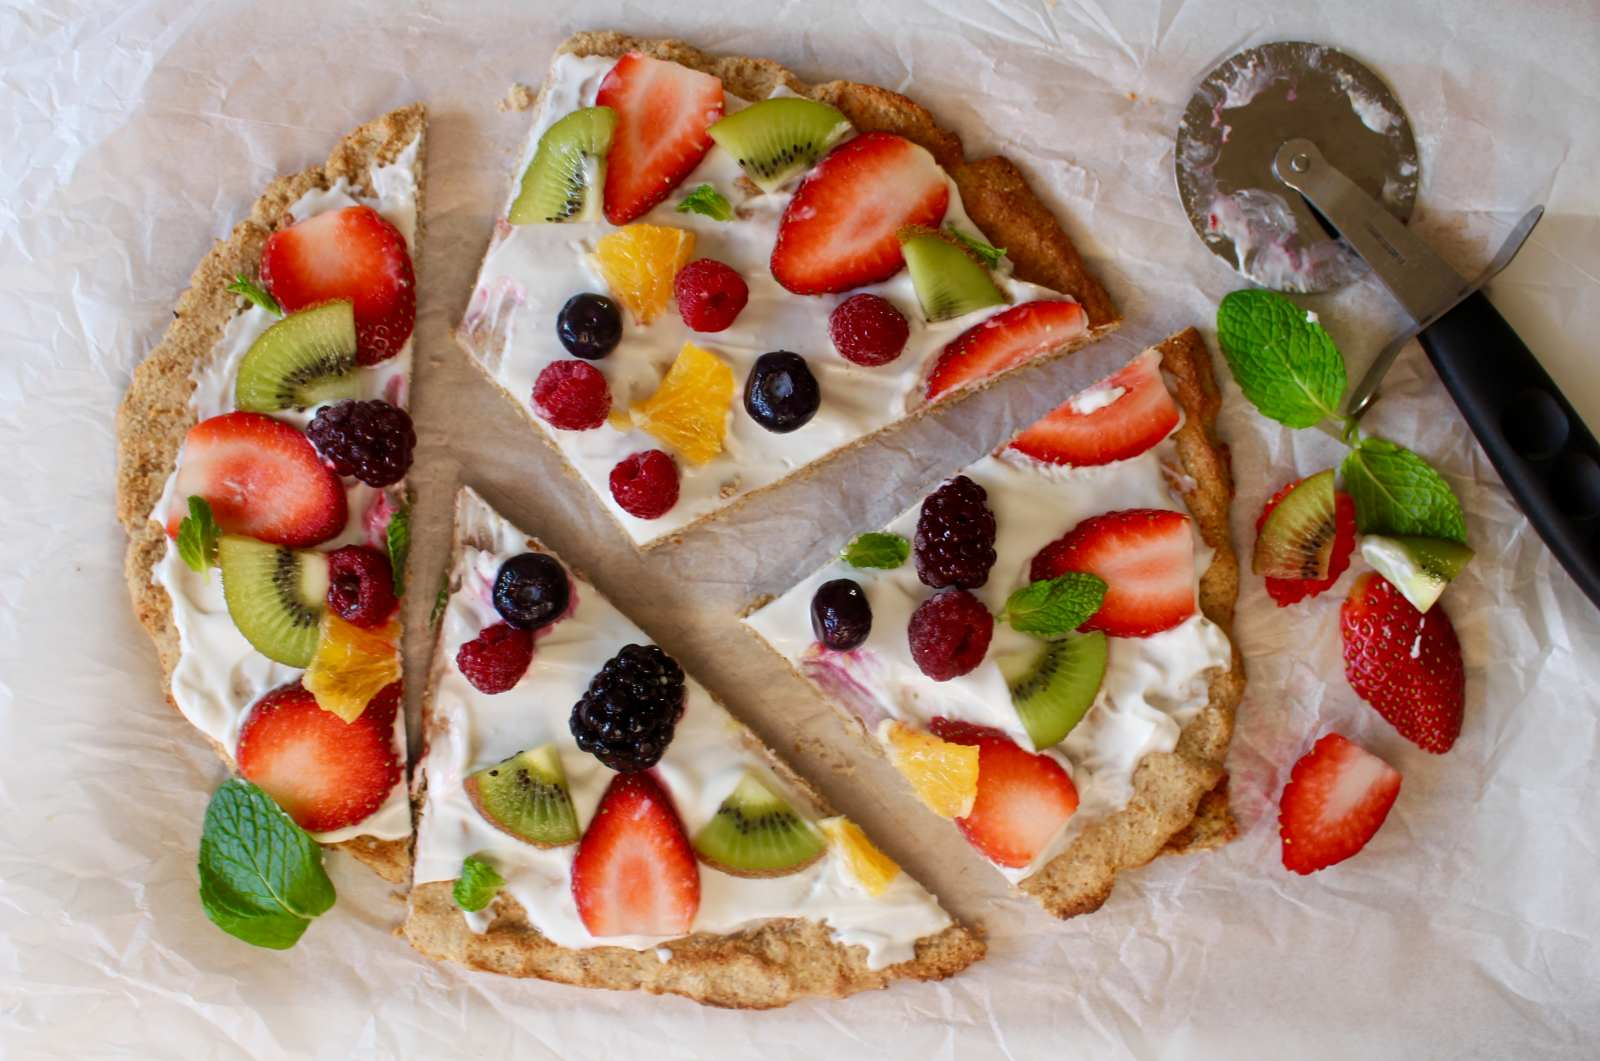 Healthy Fruit Pizza Recipe For Breakfast By Archana39s Kitchen